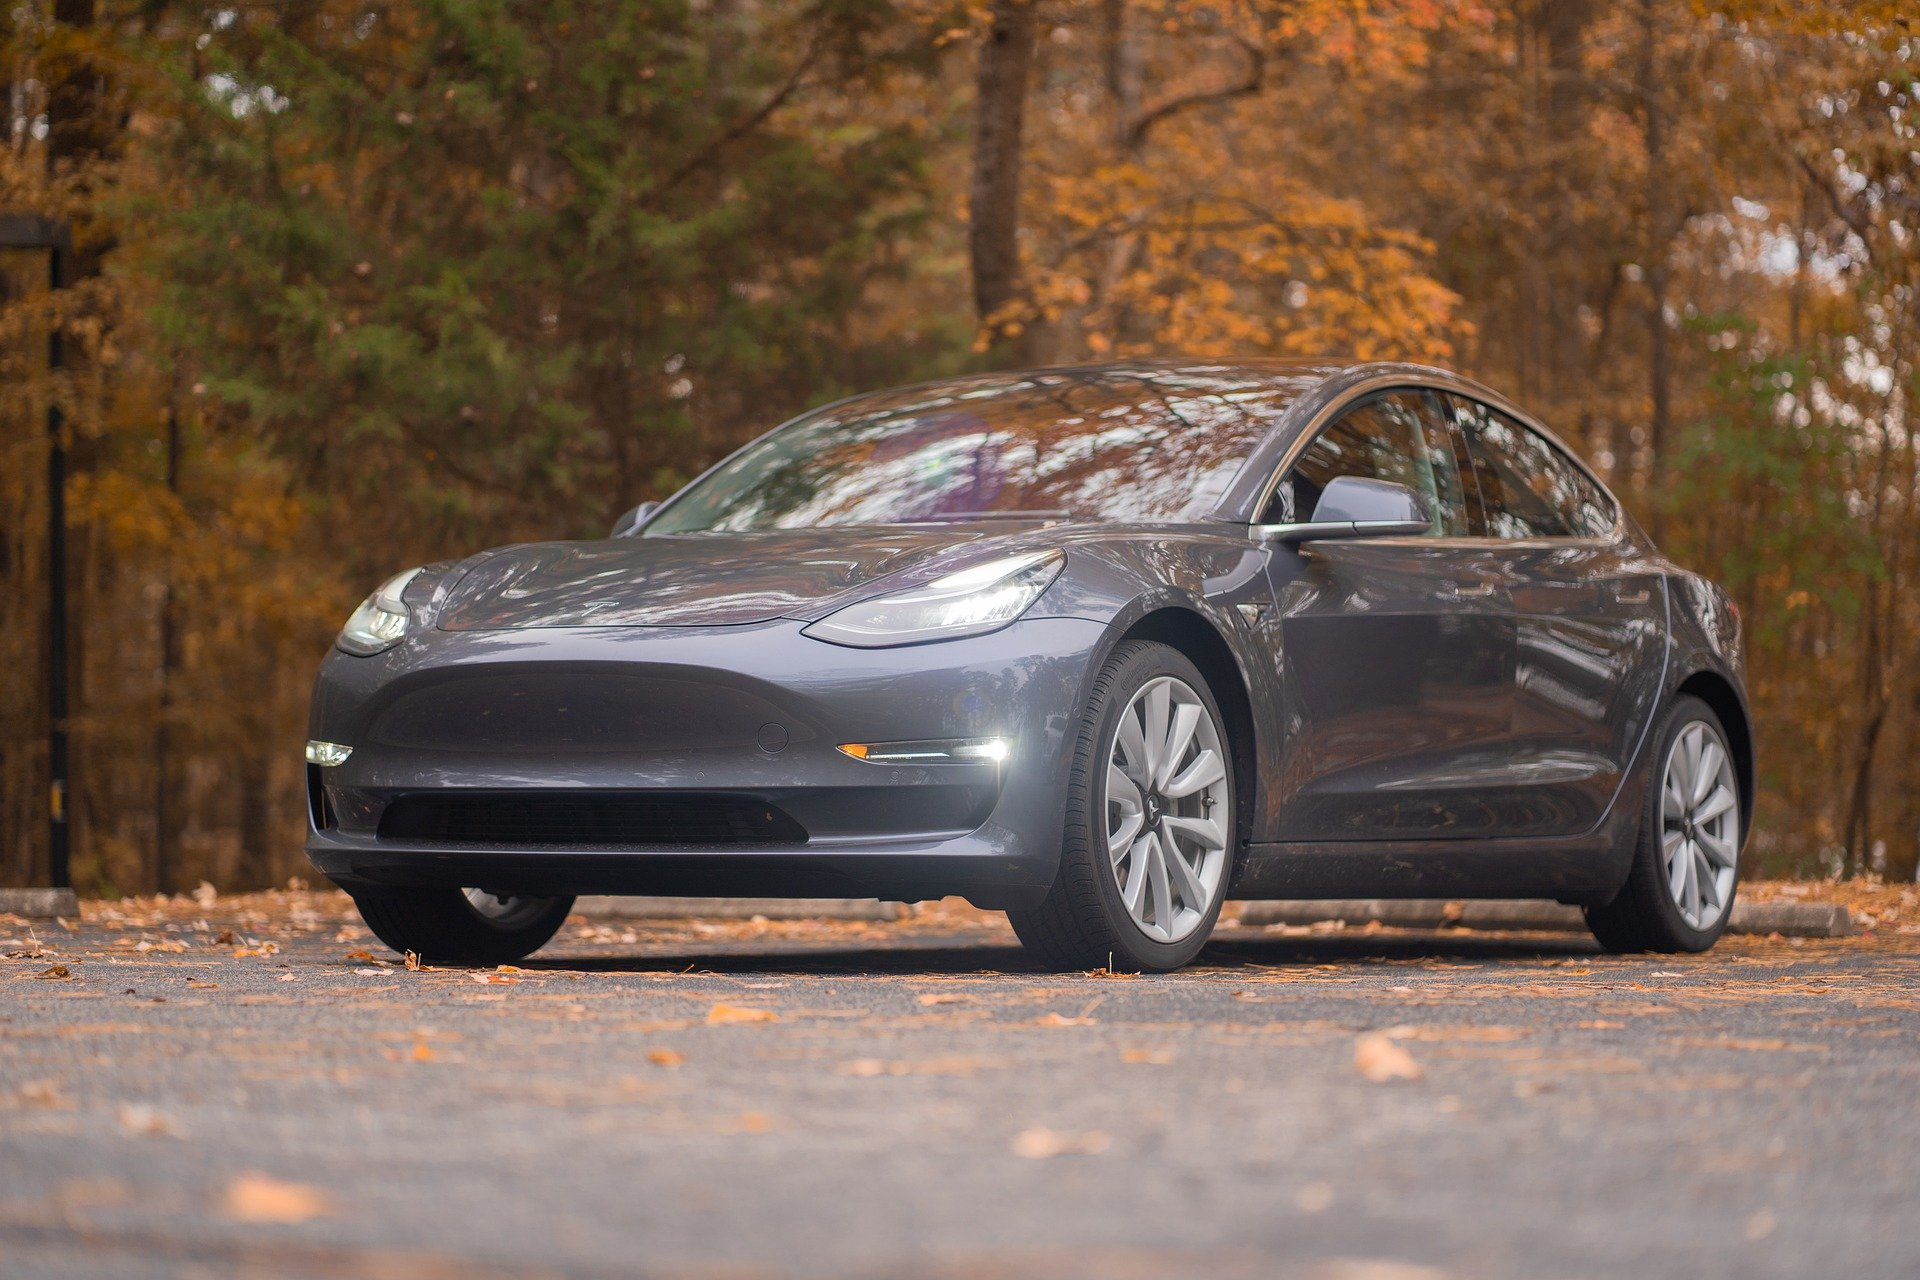 Grey Tesla driving on a road surrounded by trees in the Fall.